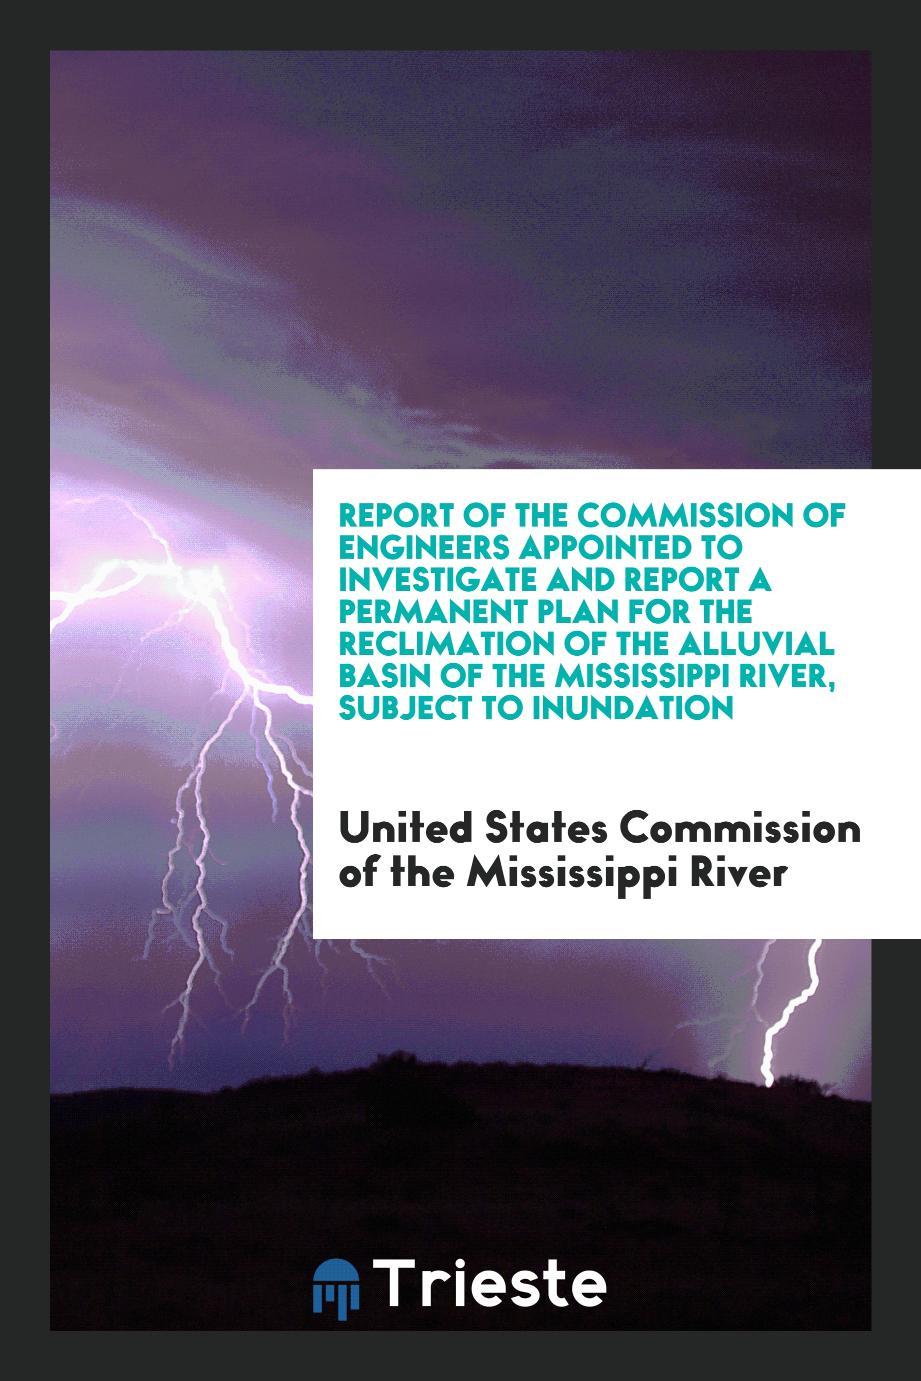 Report of the Commission of Engineers Appointed to Investigate and Report a Permanent Plan for the Reclimation of the Alluvial Basin of the Mississippi River, Subject to Inundation